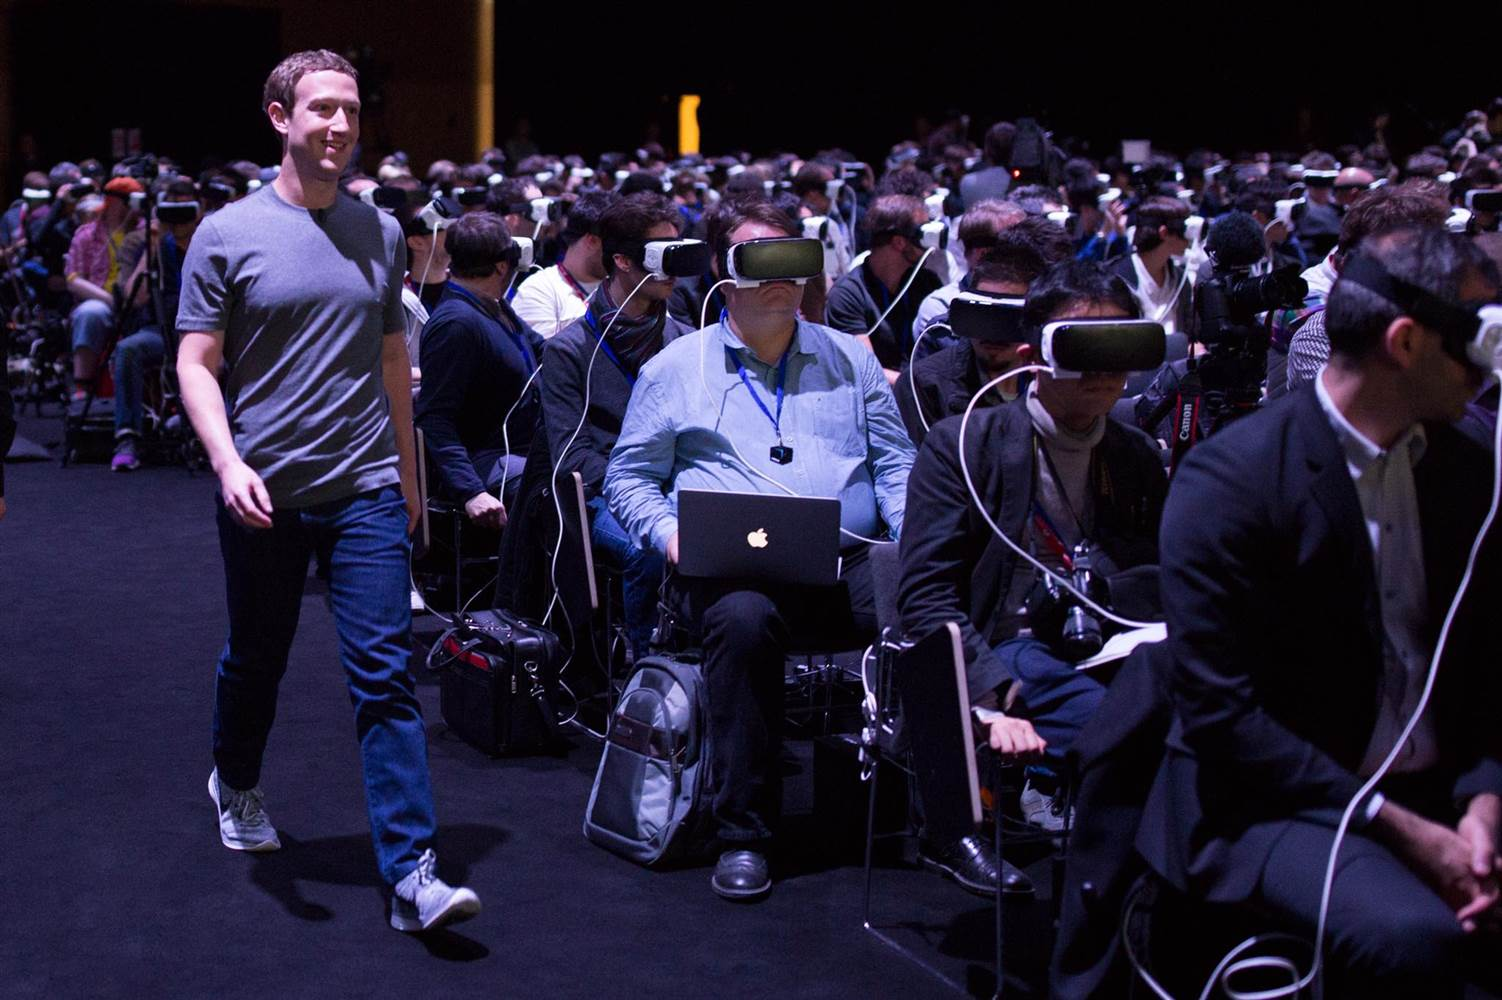 Zuck and VR